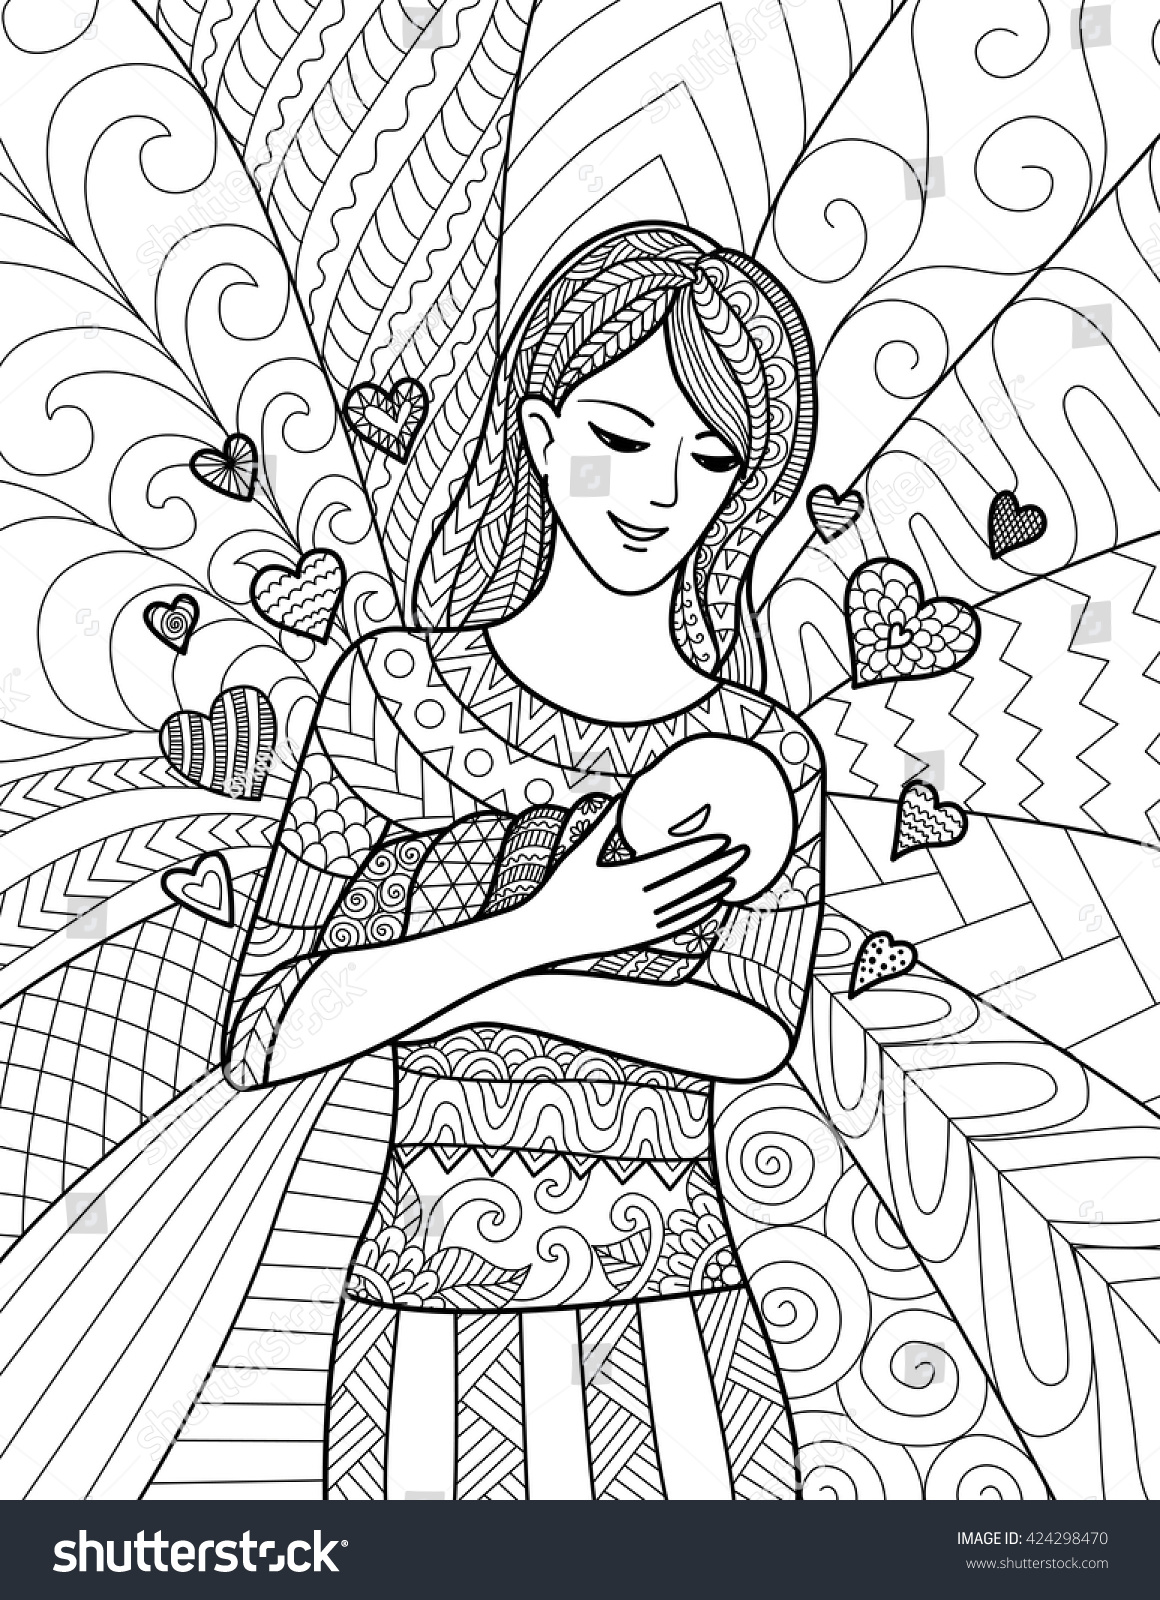 The coloring book clean - Mother Holding Her Baby Clean Line Doodle Art Design For Coloring Book For Adult